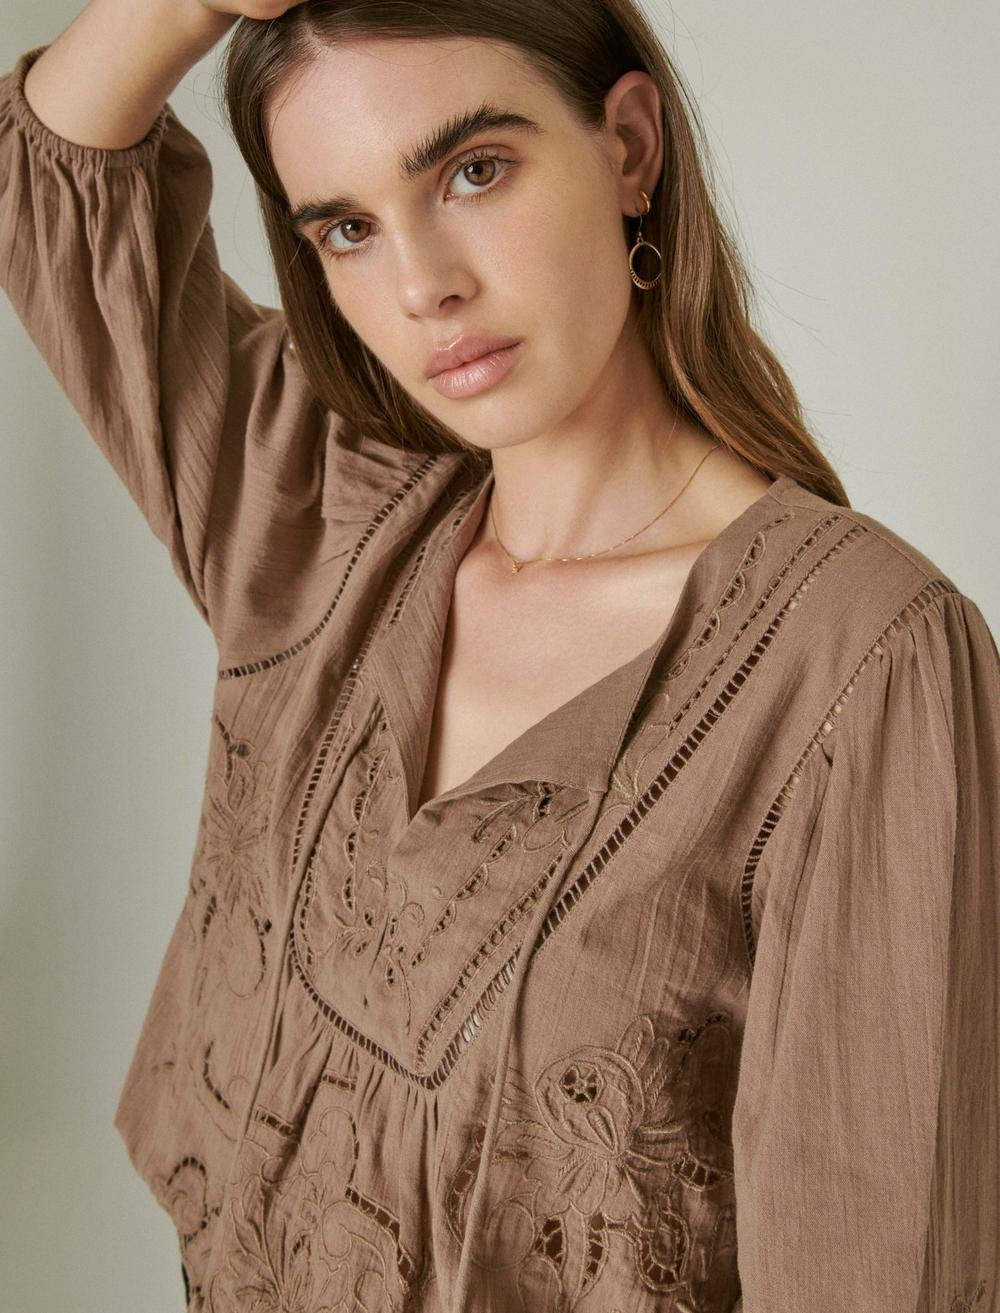 EMBROIDERED PEASANT BLOUSE, image 6